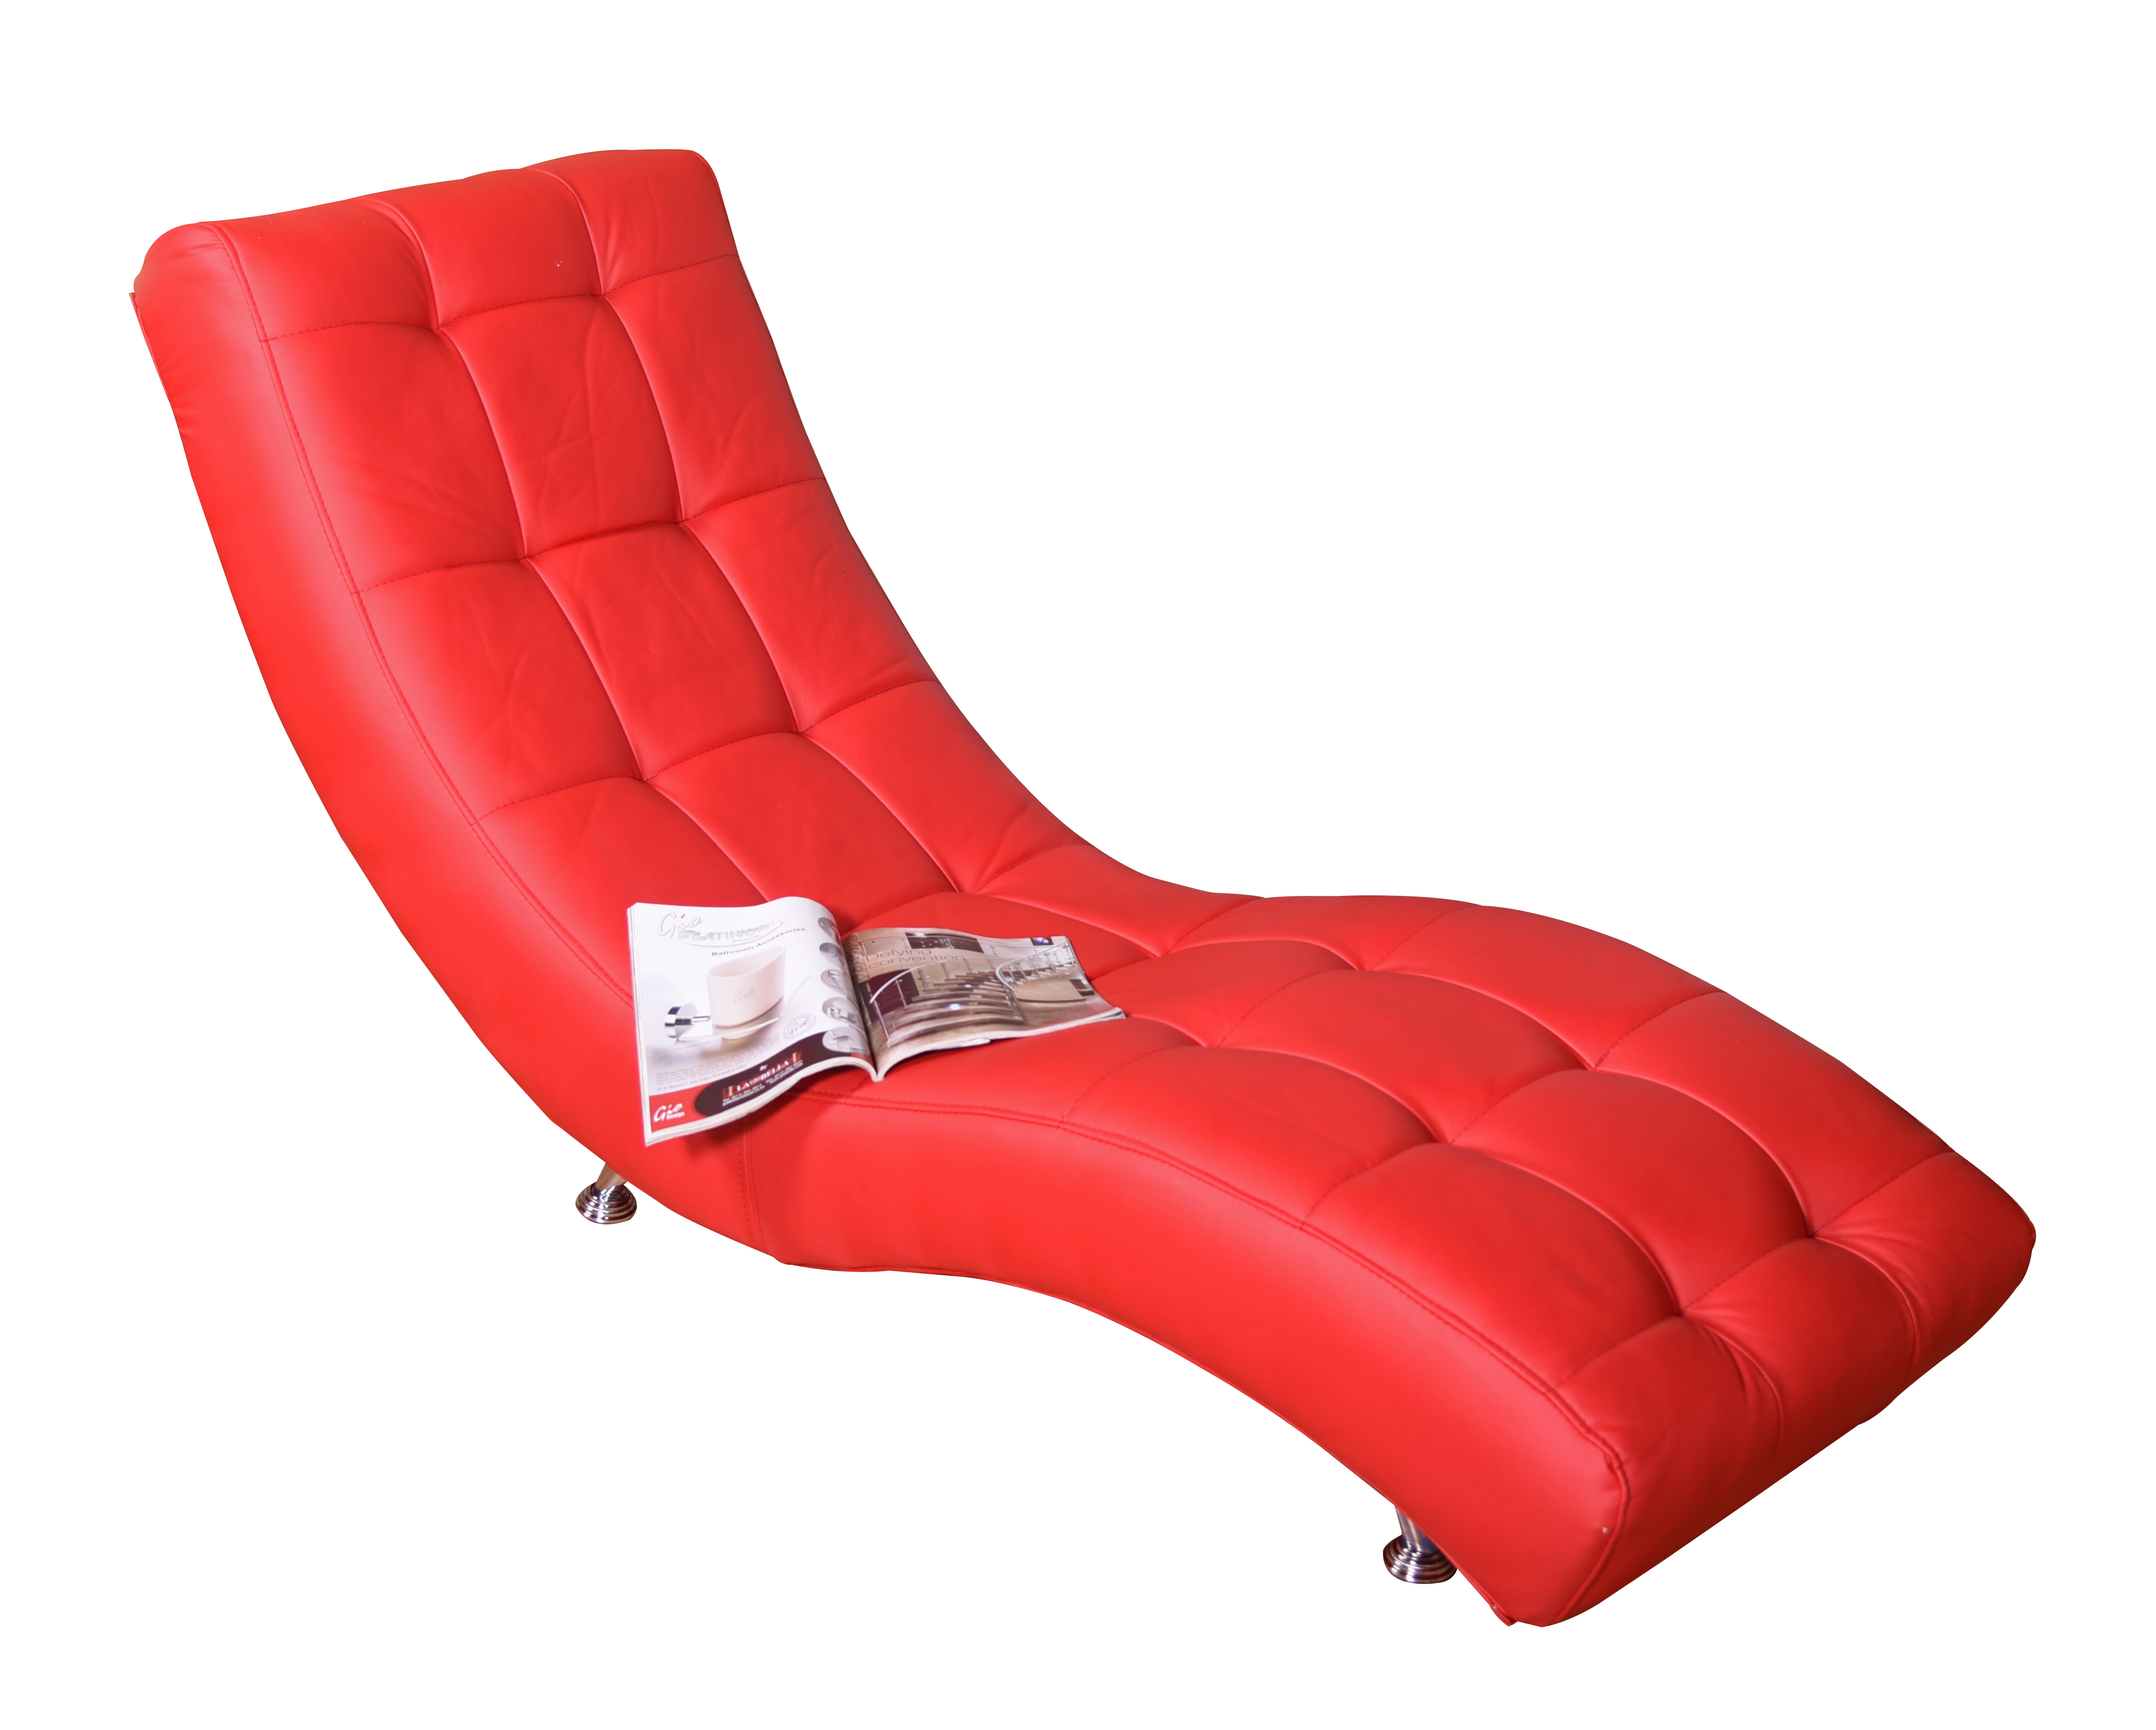 S chaise lounge chaise lounge chair sofa cheap couches for Chaise decorative